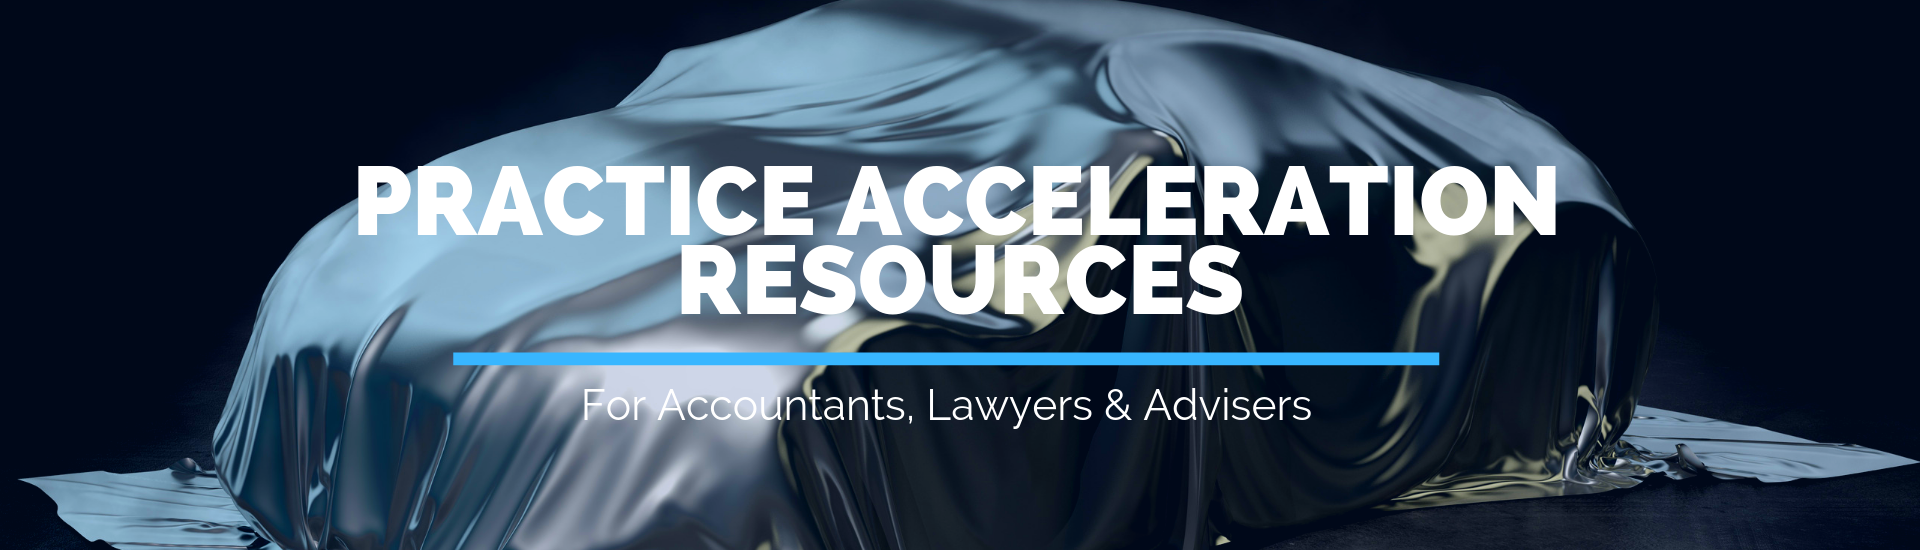 Practice Acceleration Resources for Accountants, Lawyers, Advisers | Andrew Abel | Advisio